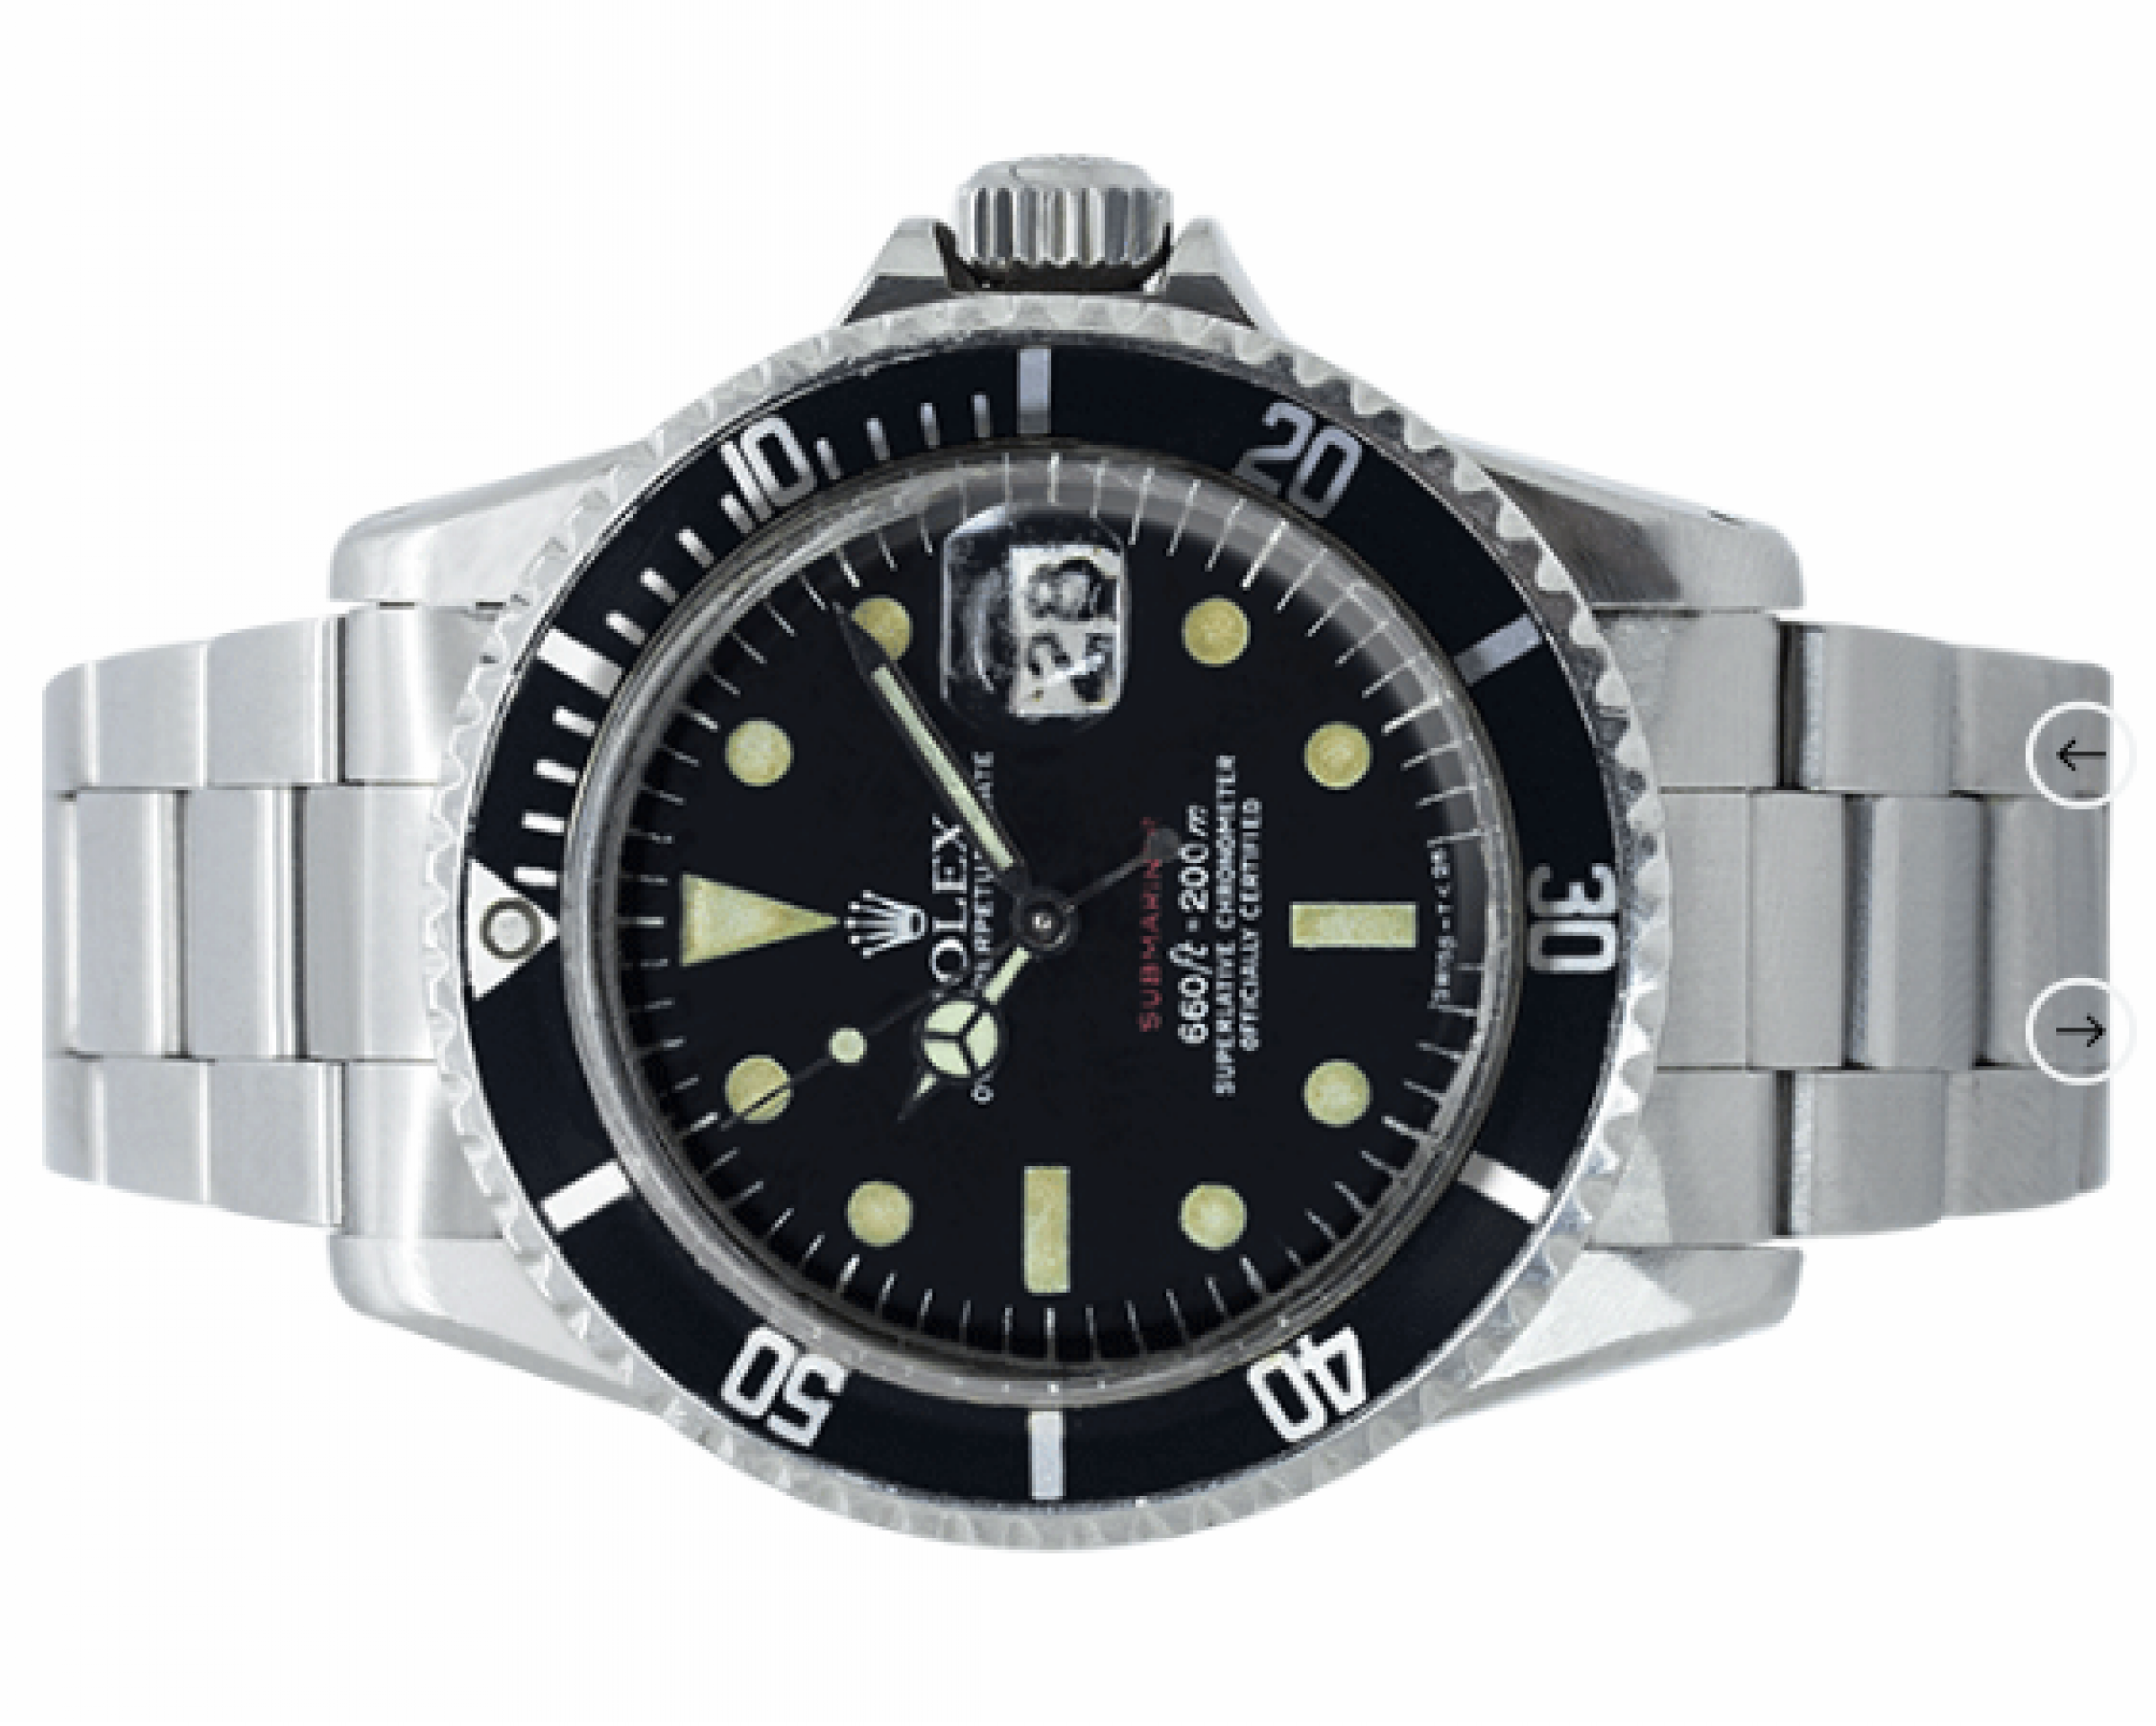 Rolex Oyster Perpetual Submariner Single Red Stainless Steel